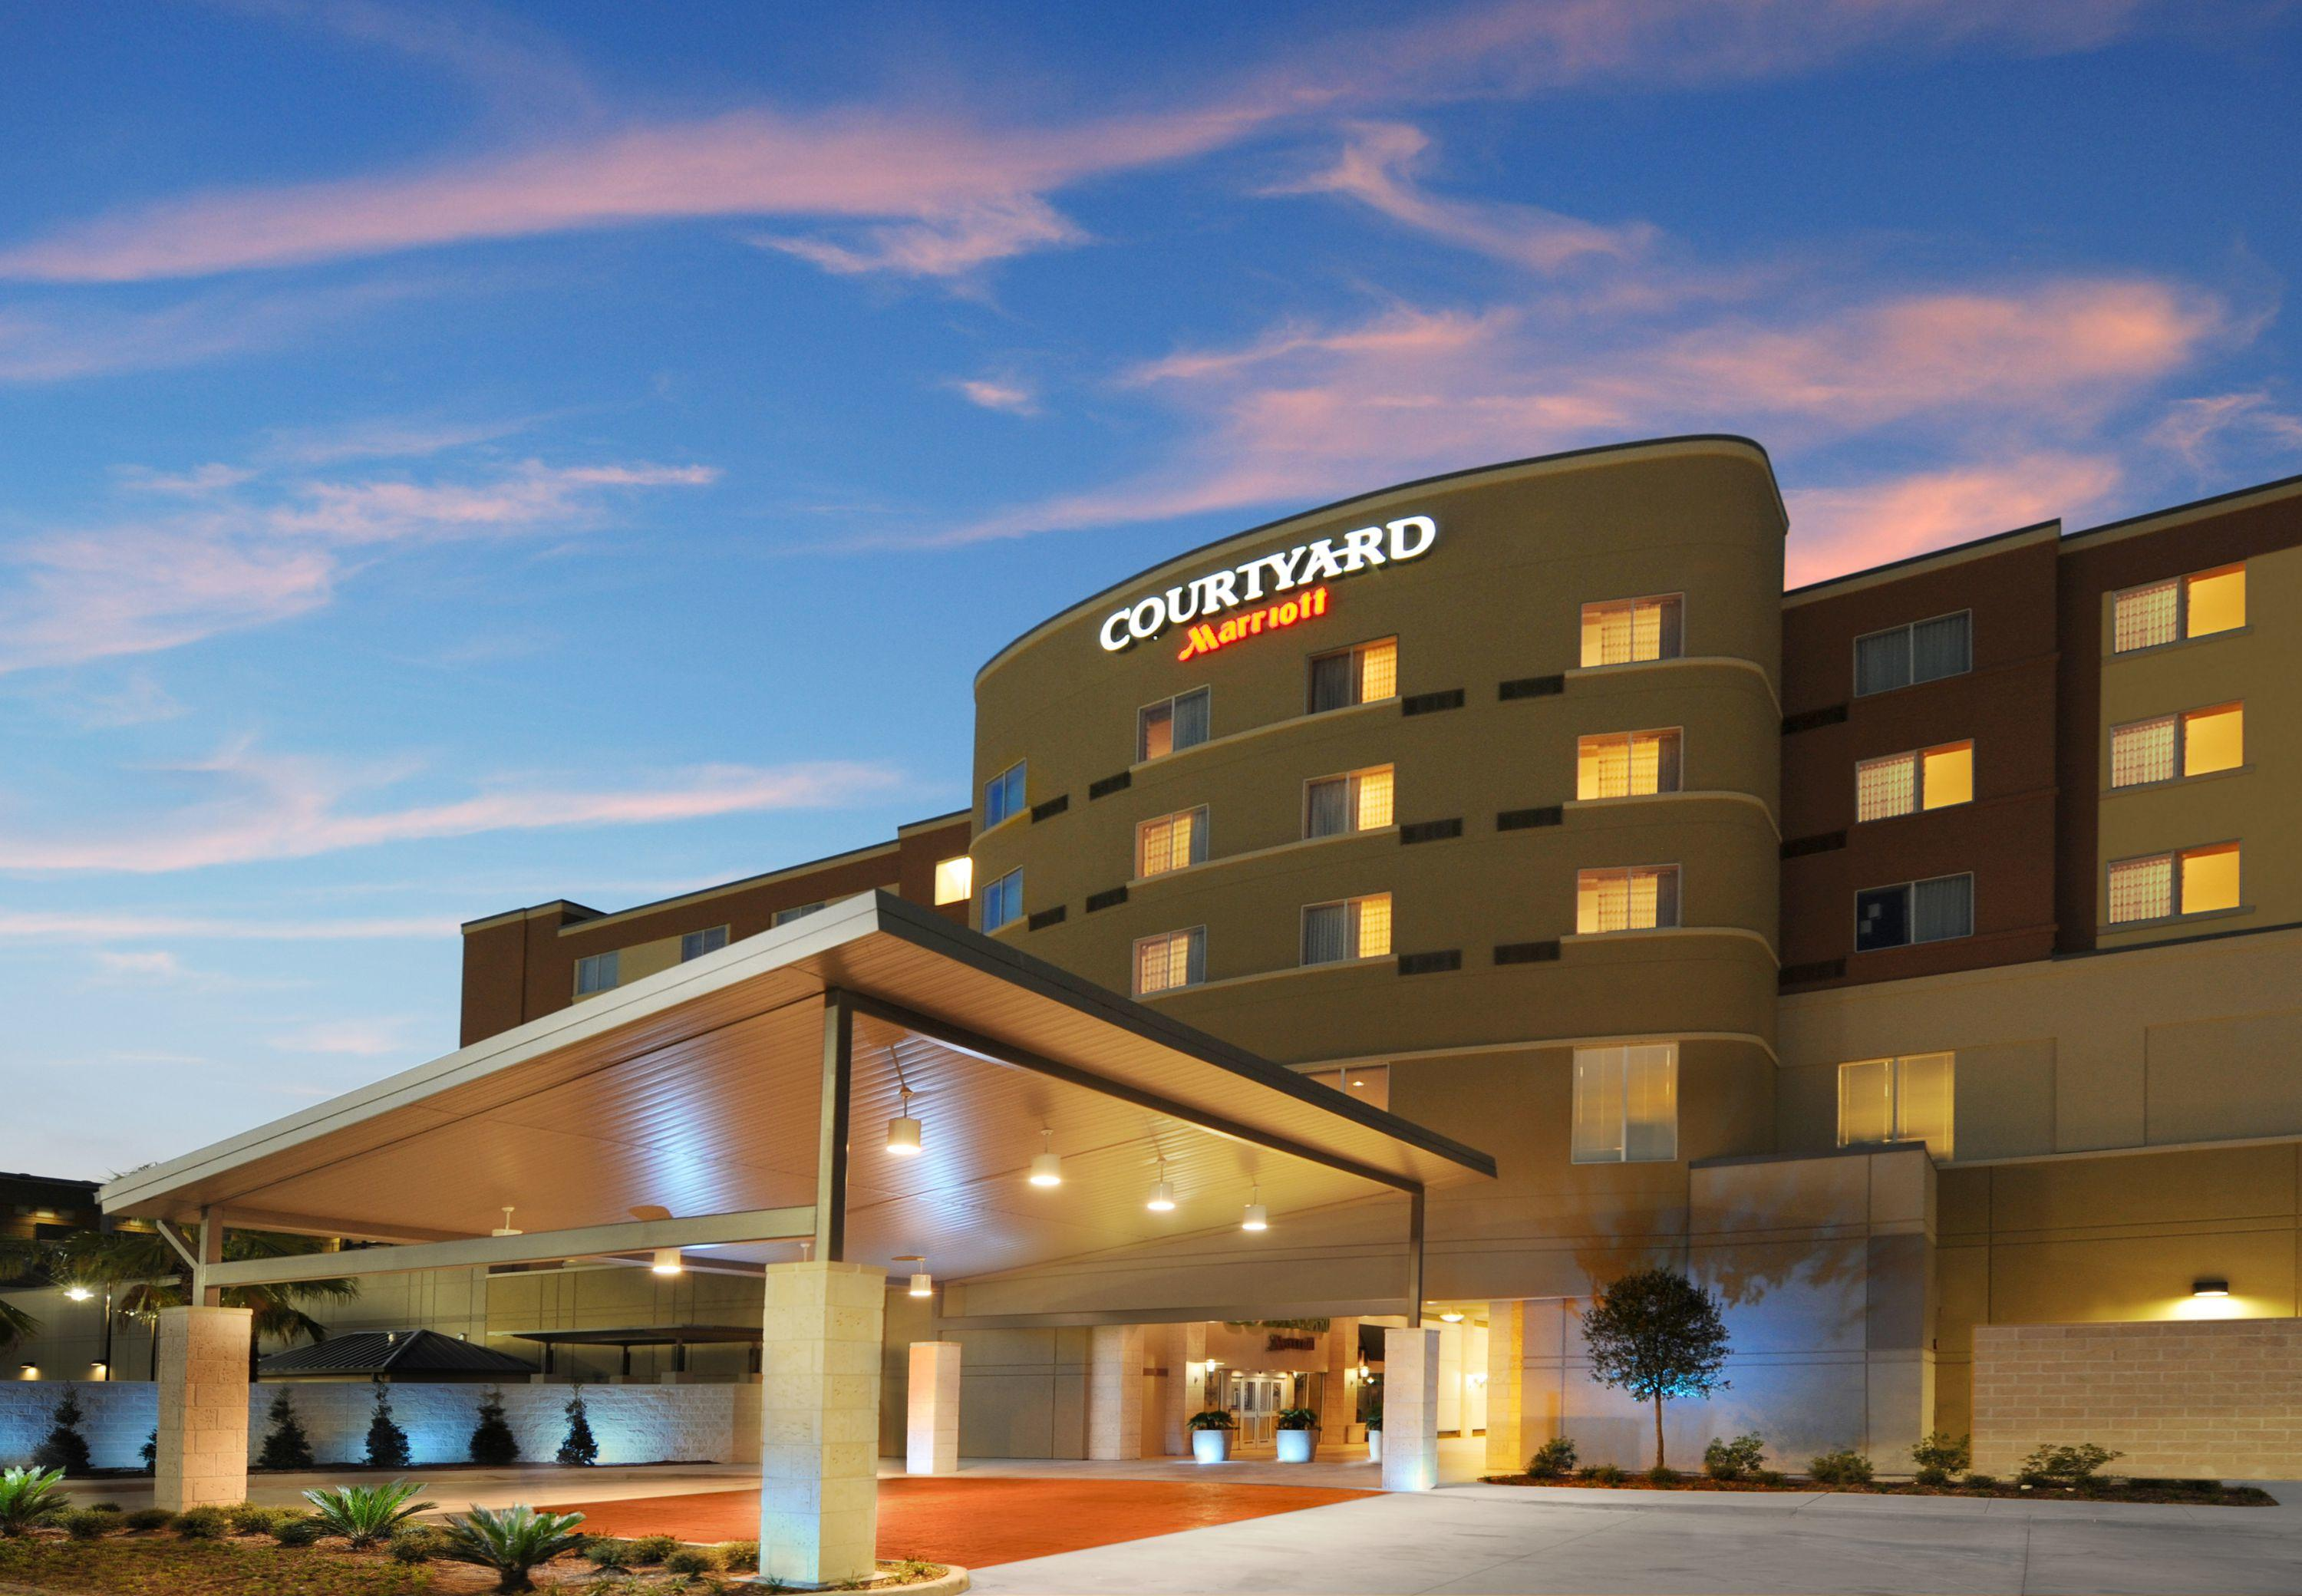 Courtyard by Marriott Houston Pearland image 9